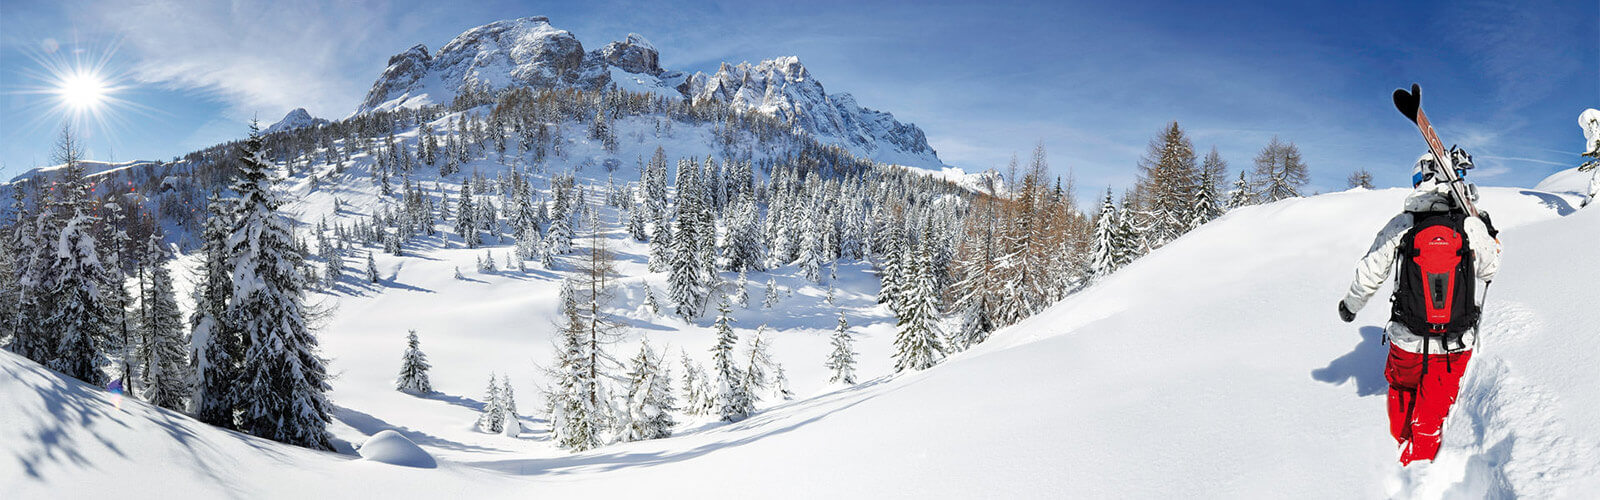 Winter excursion & Alpine skiing tours